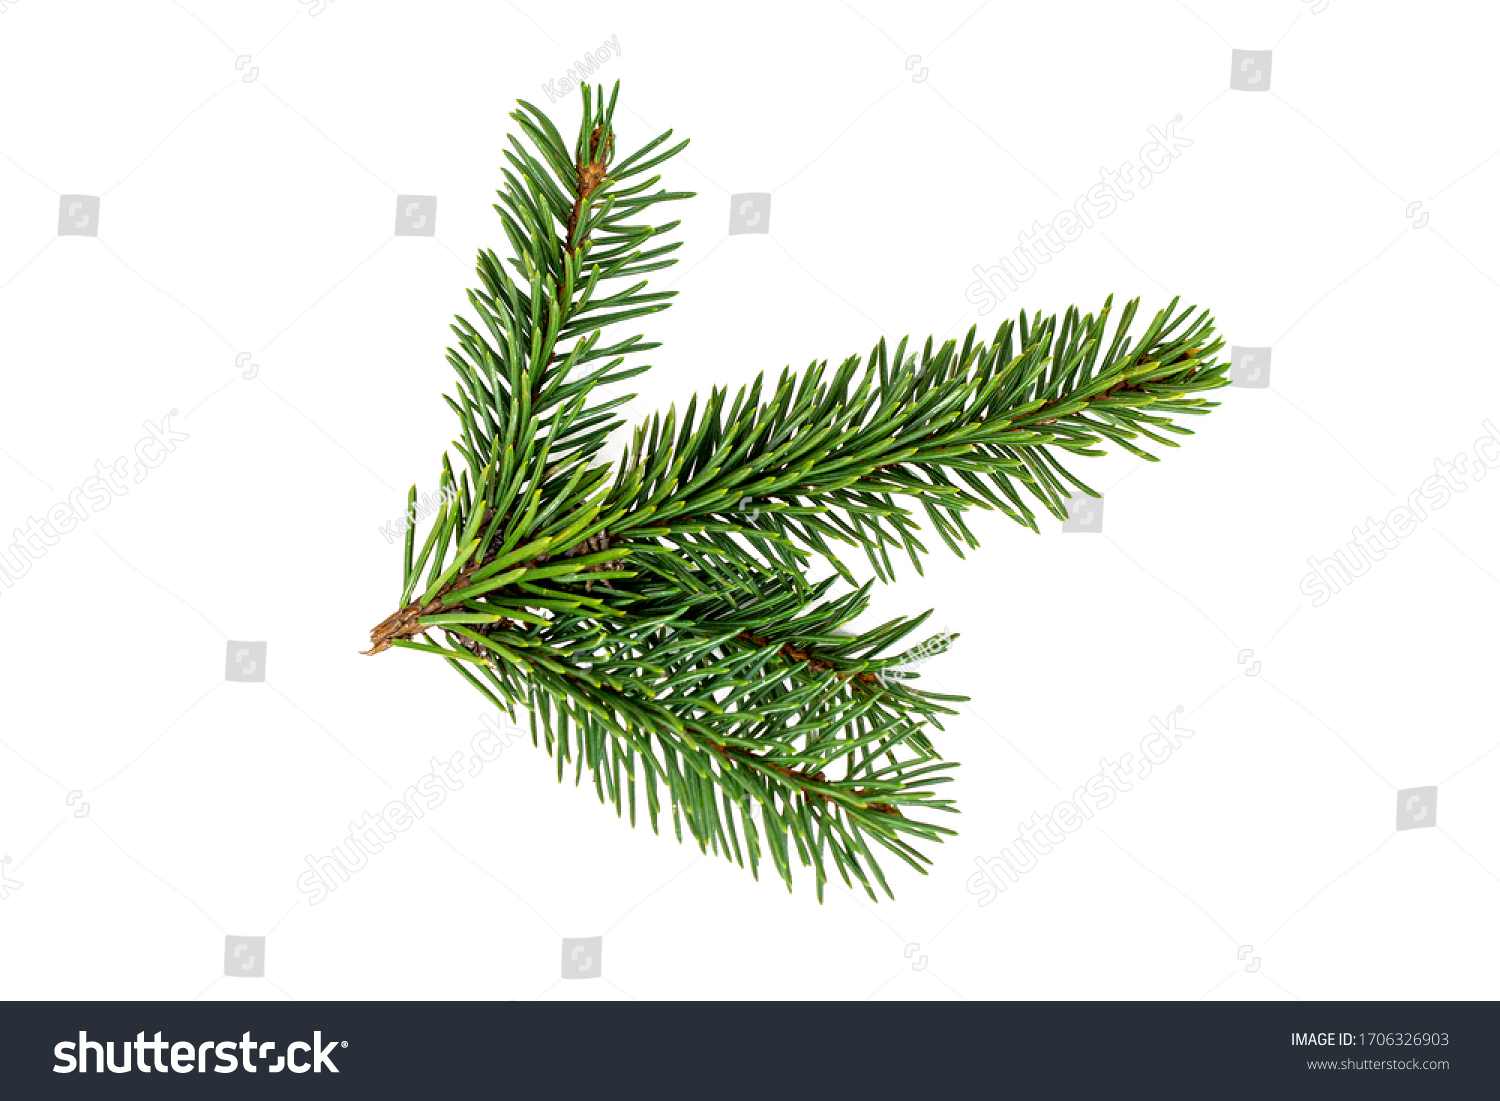 Top view of green fir tree spruce branch with needles isolated on white background #1706326903